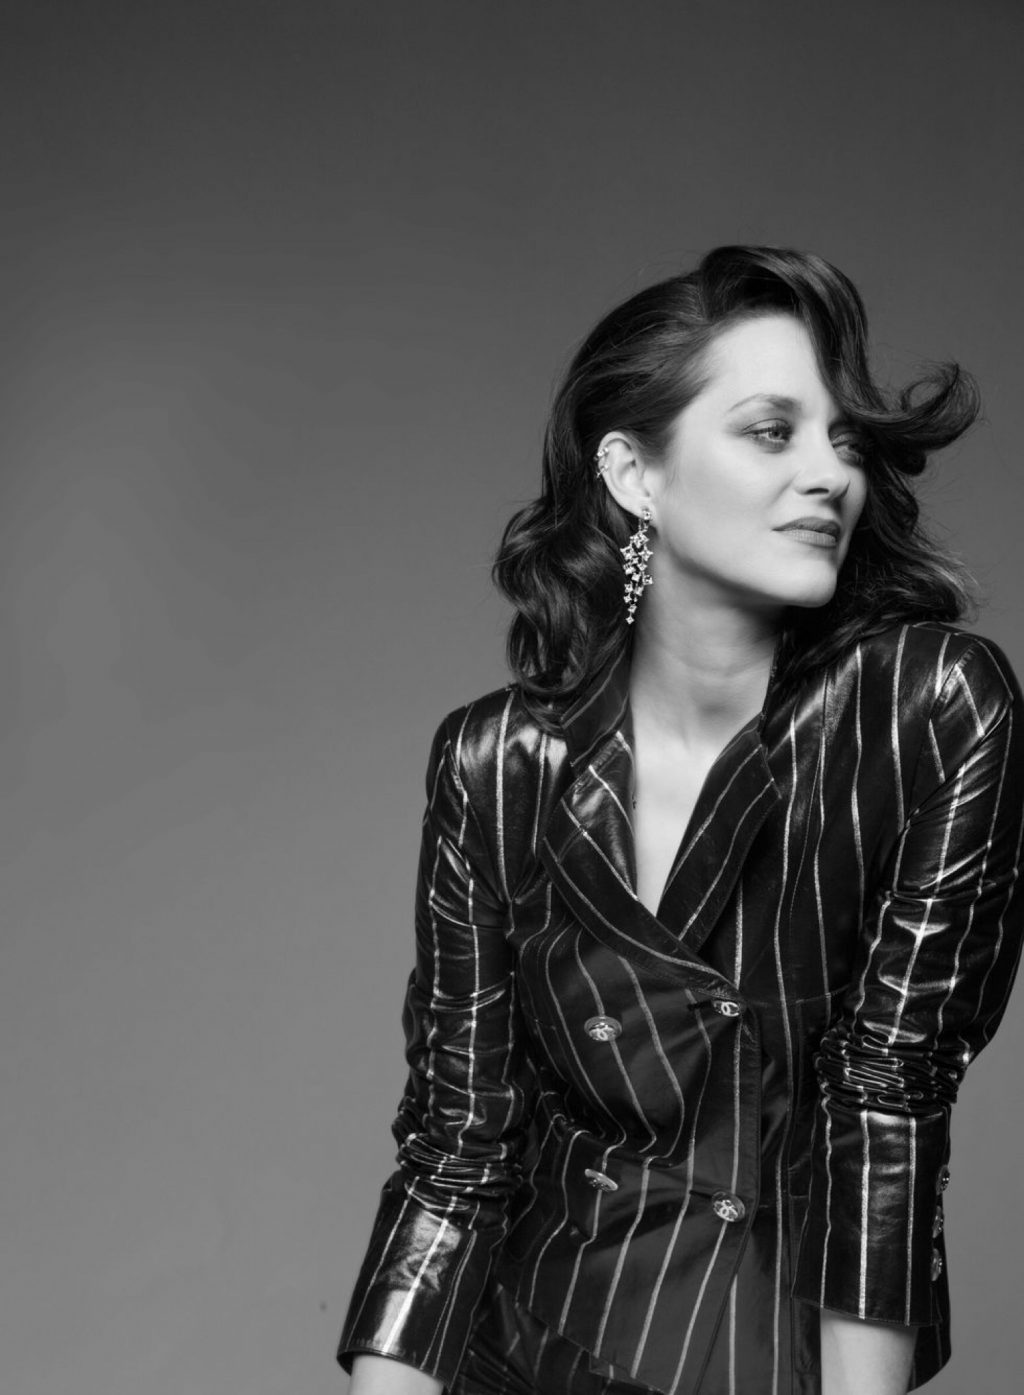 Marion Cotillard poses for Chopard Ice Cube jewelry campaign.